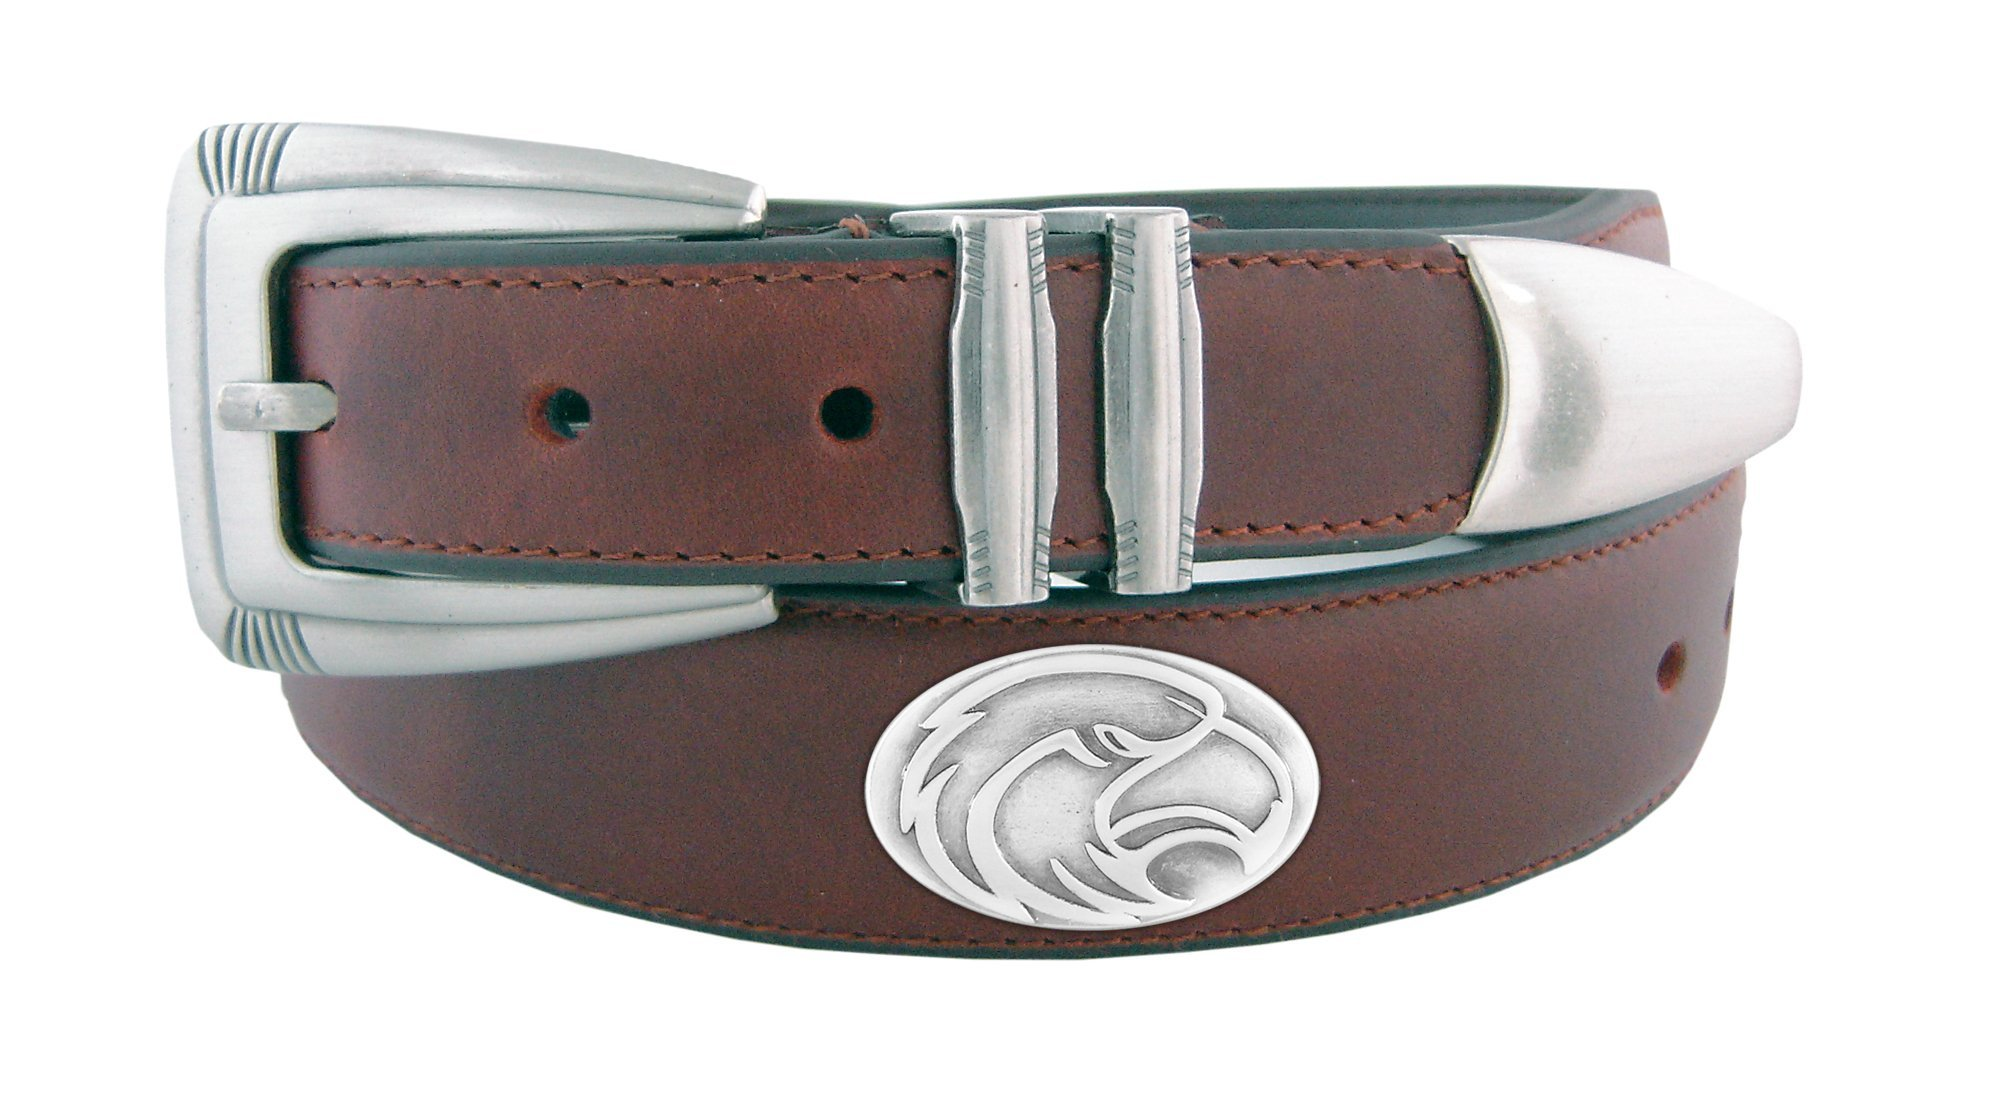 ZEP-PRO NCAA Southern Mississippi Golden Eagles Men's Leather Concho Tapered Tip Belt, Brown, 40